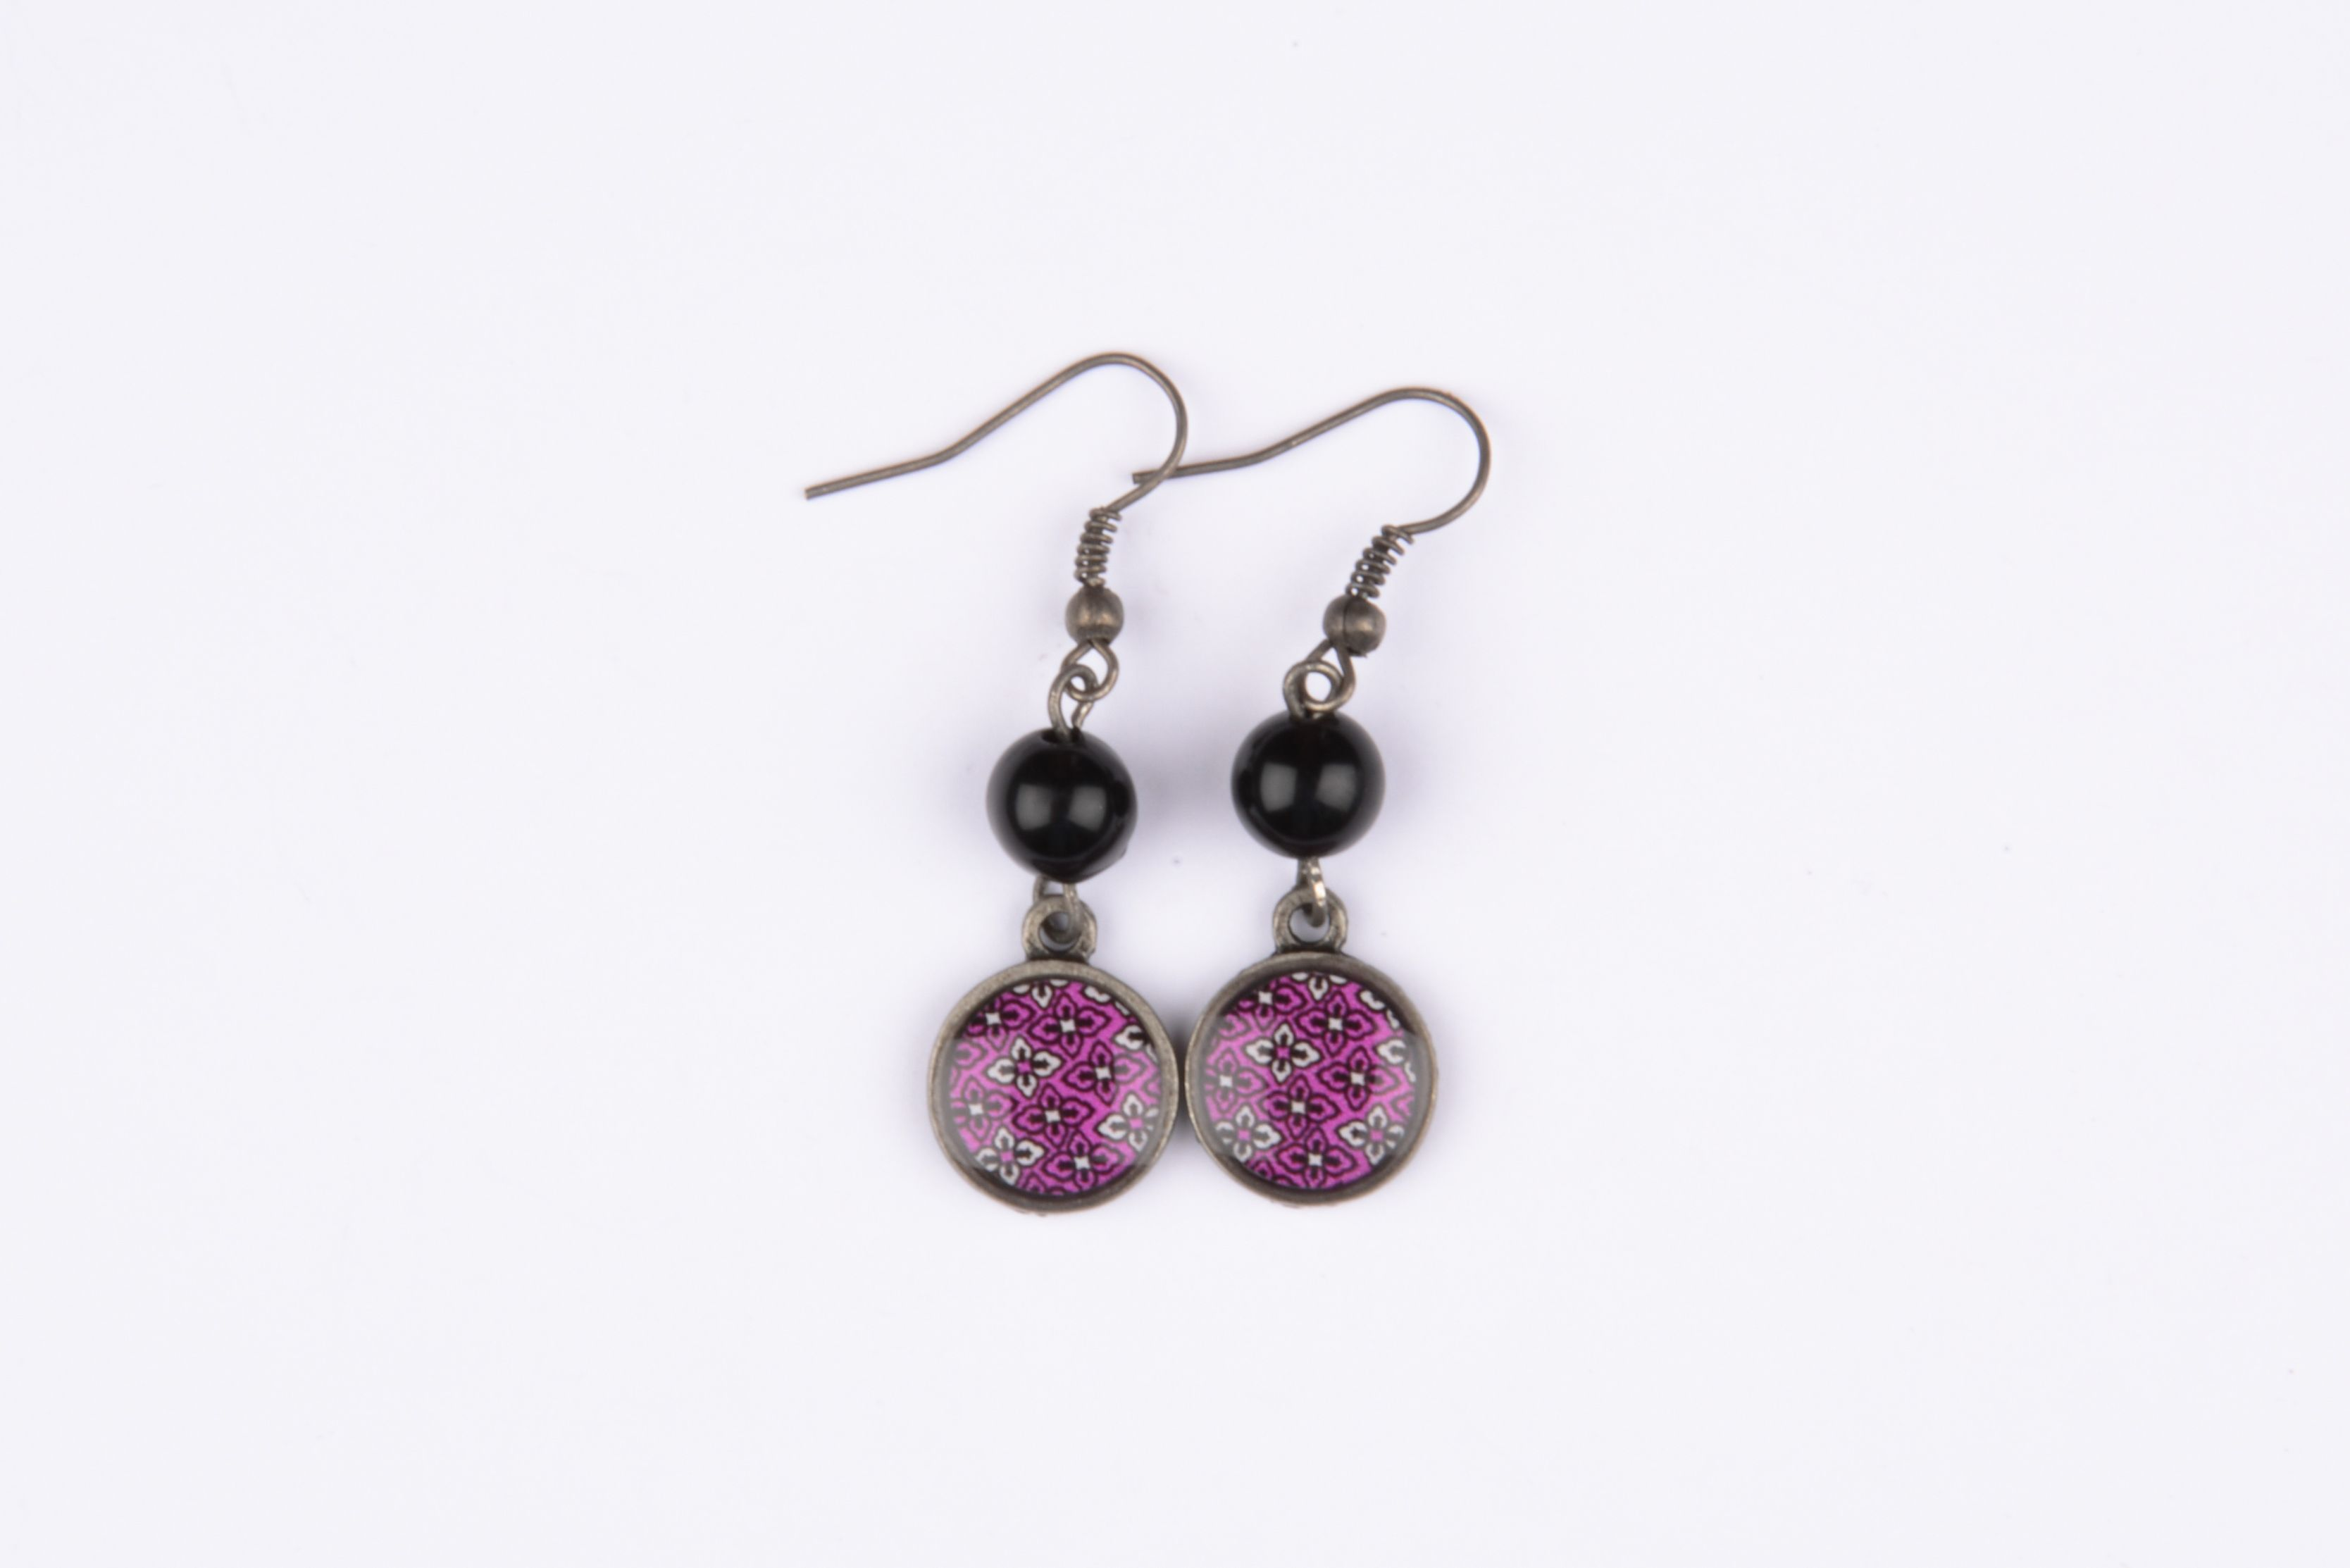 Boucles d'oreilles - Collection Cristal litchi.fr